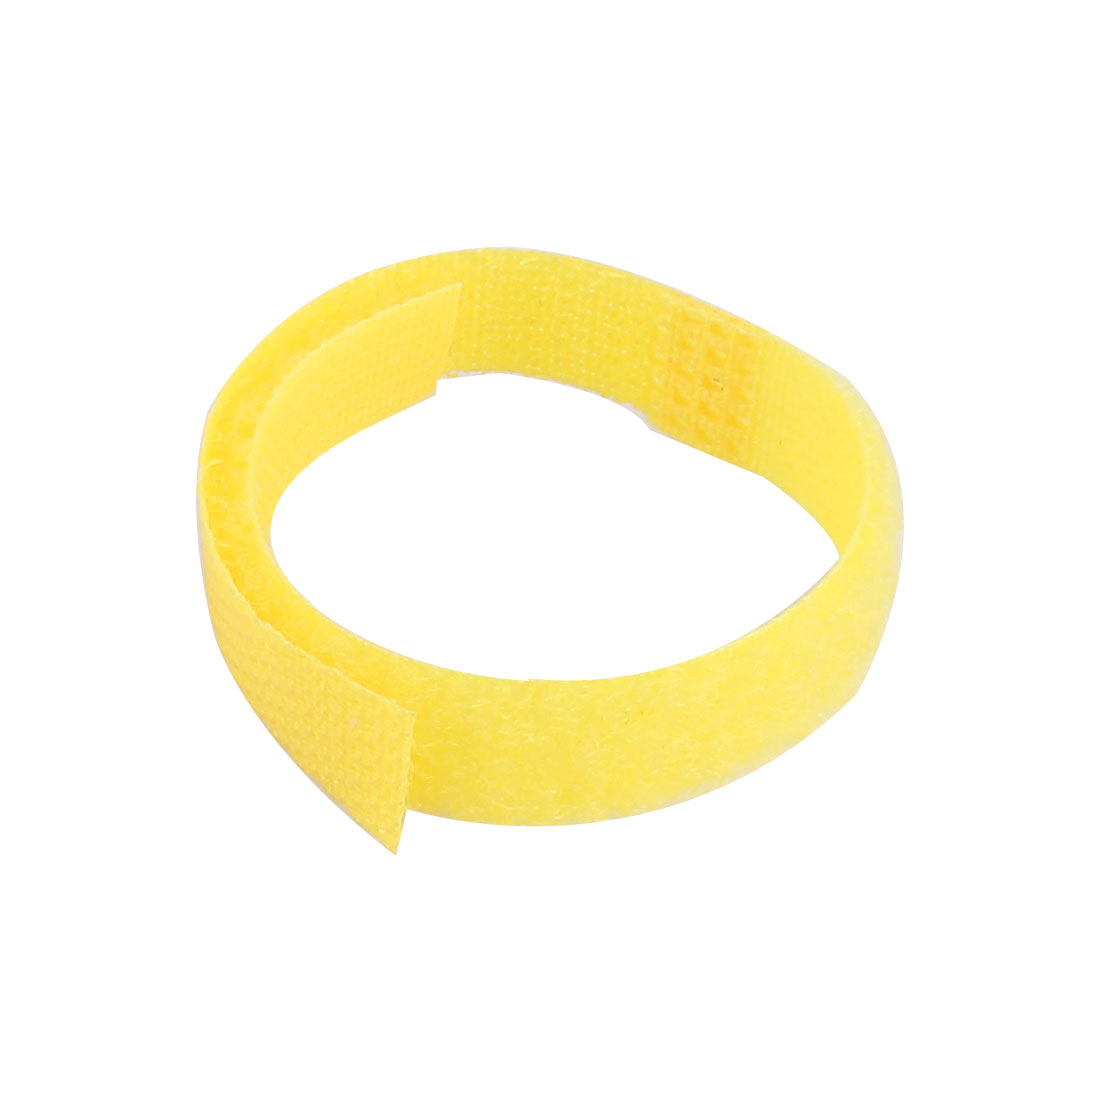 Self Adhesive Sticky Back Fabric Fastener Hook and Loop Tape 16cm Long 15pcs - image 1 of 2